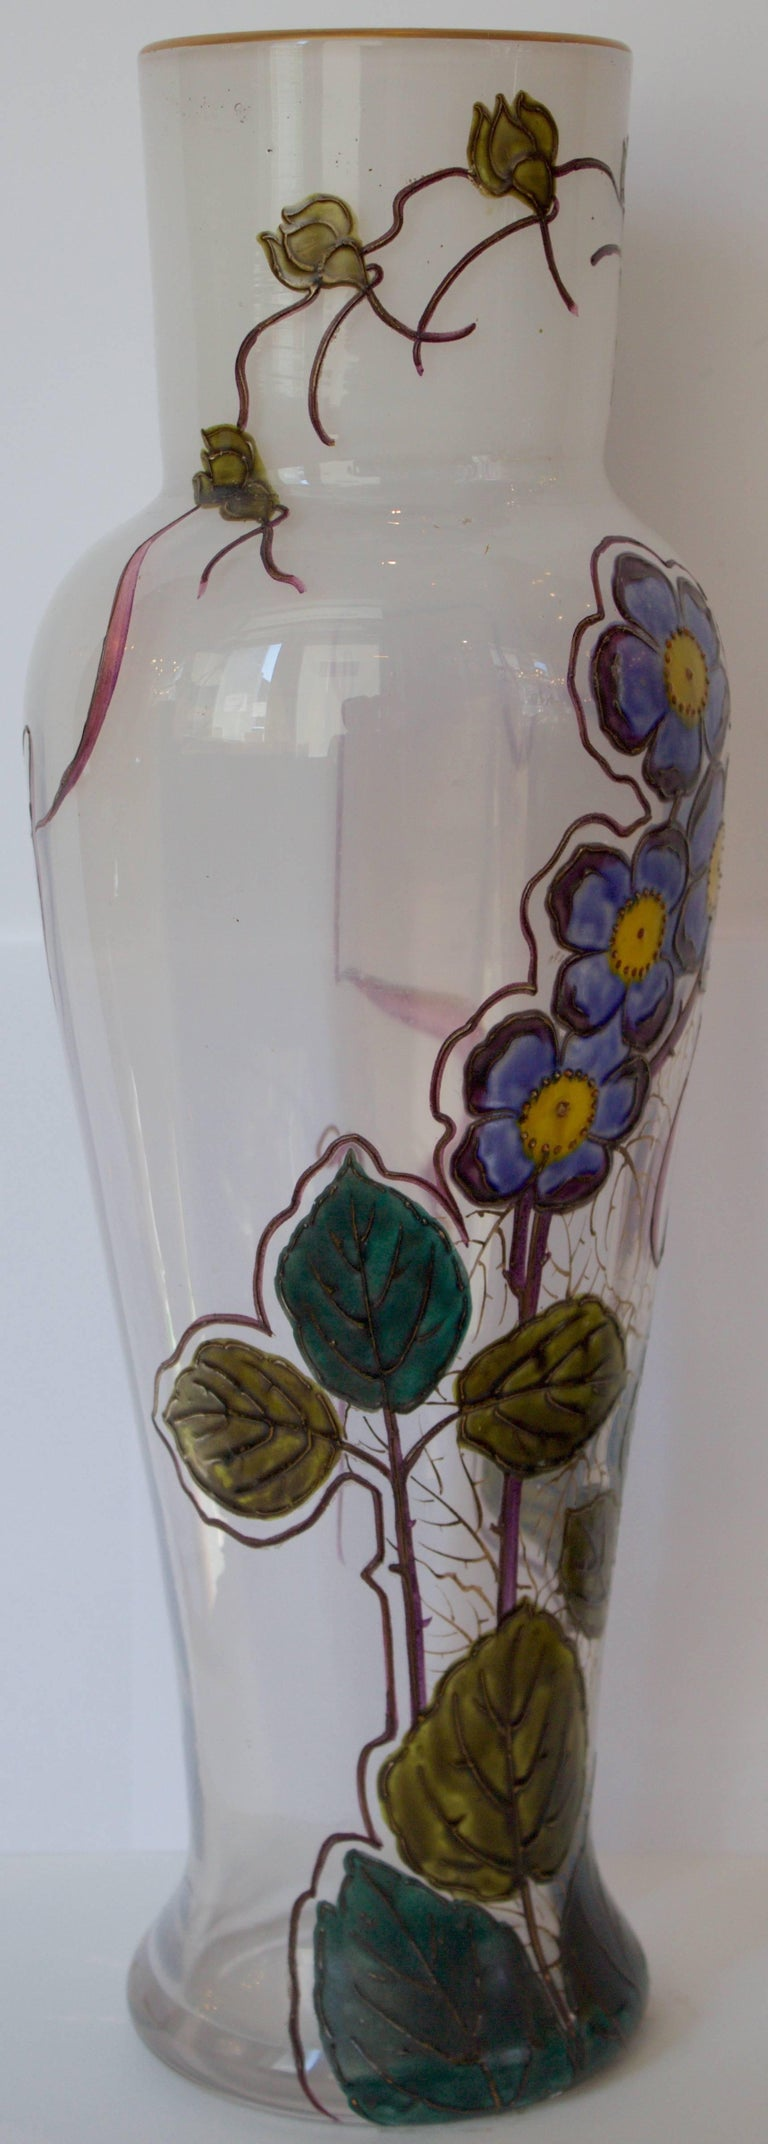 "French 19th Century Glass Vase by Legras Signed "" Montjoye L&Cie"" 6"